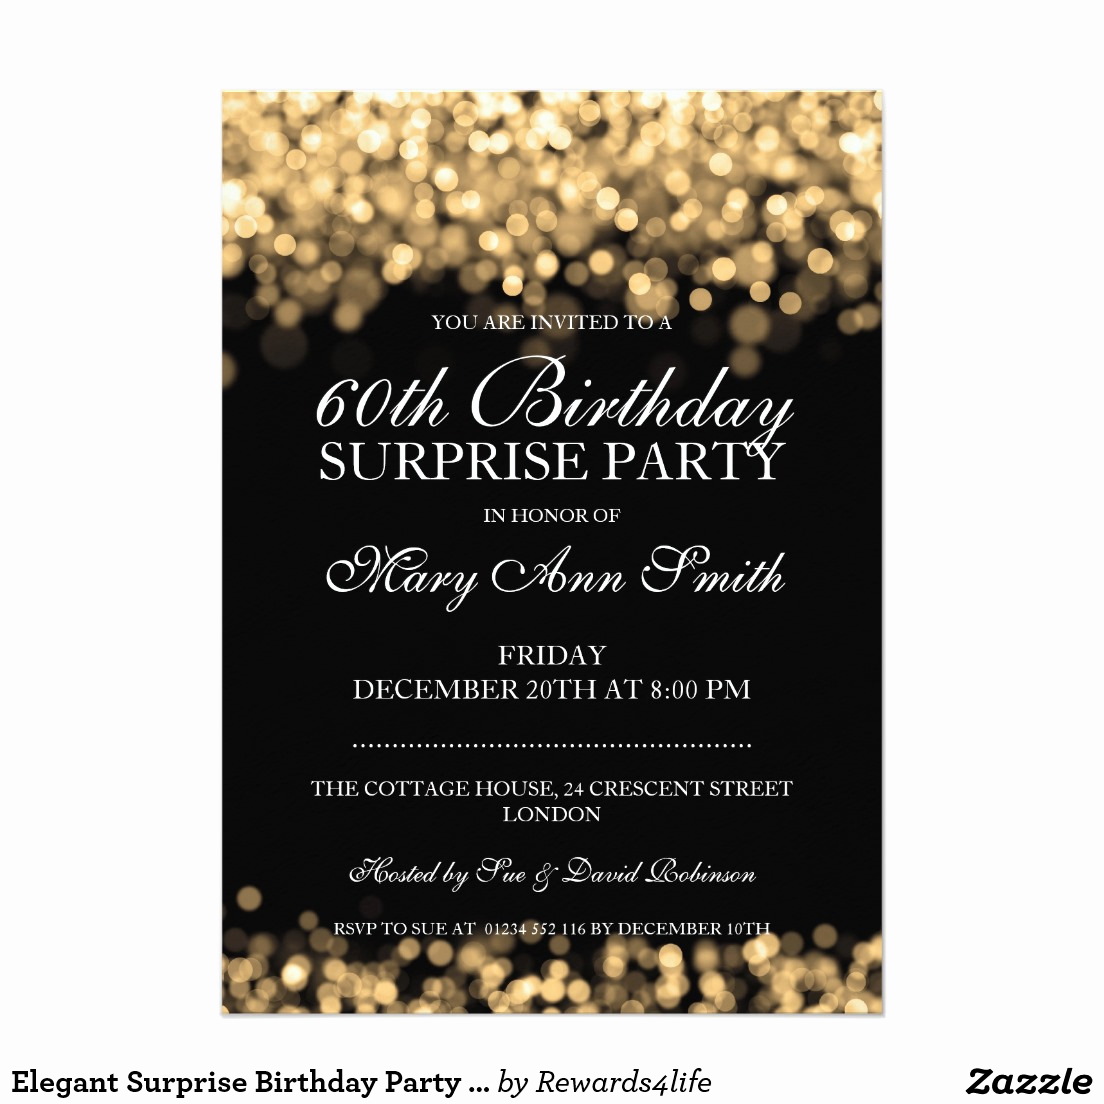 Suprise Party Invitation Wording Lovely 60th Birthday Surprise Party Invitations